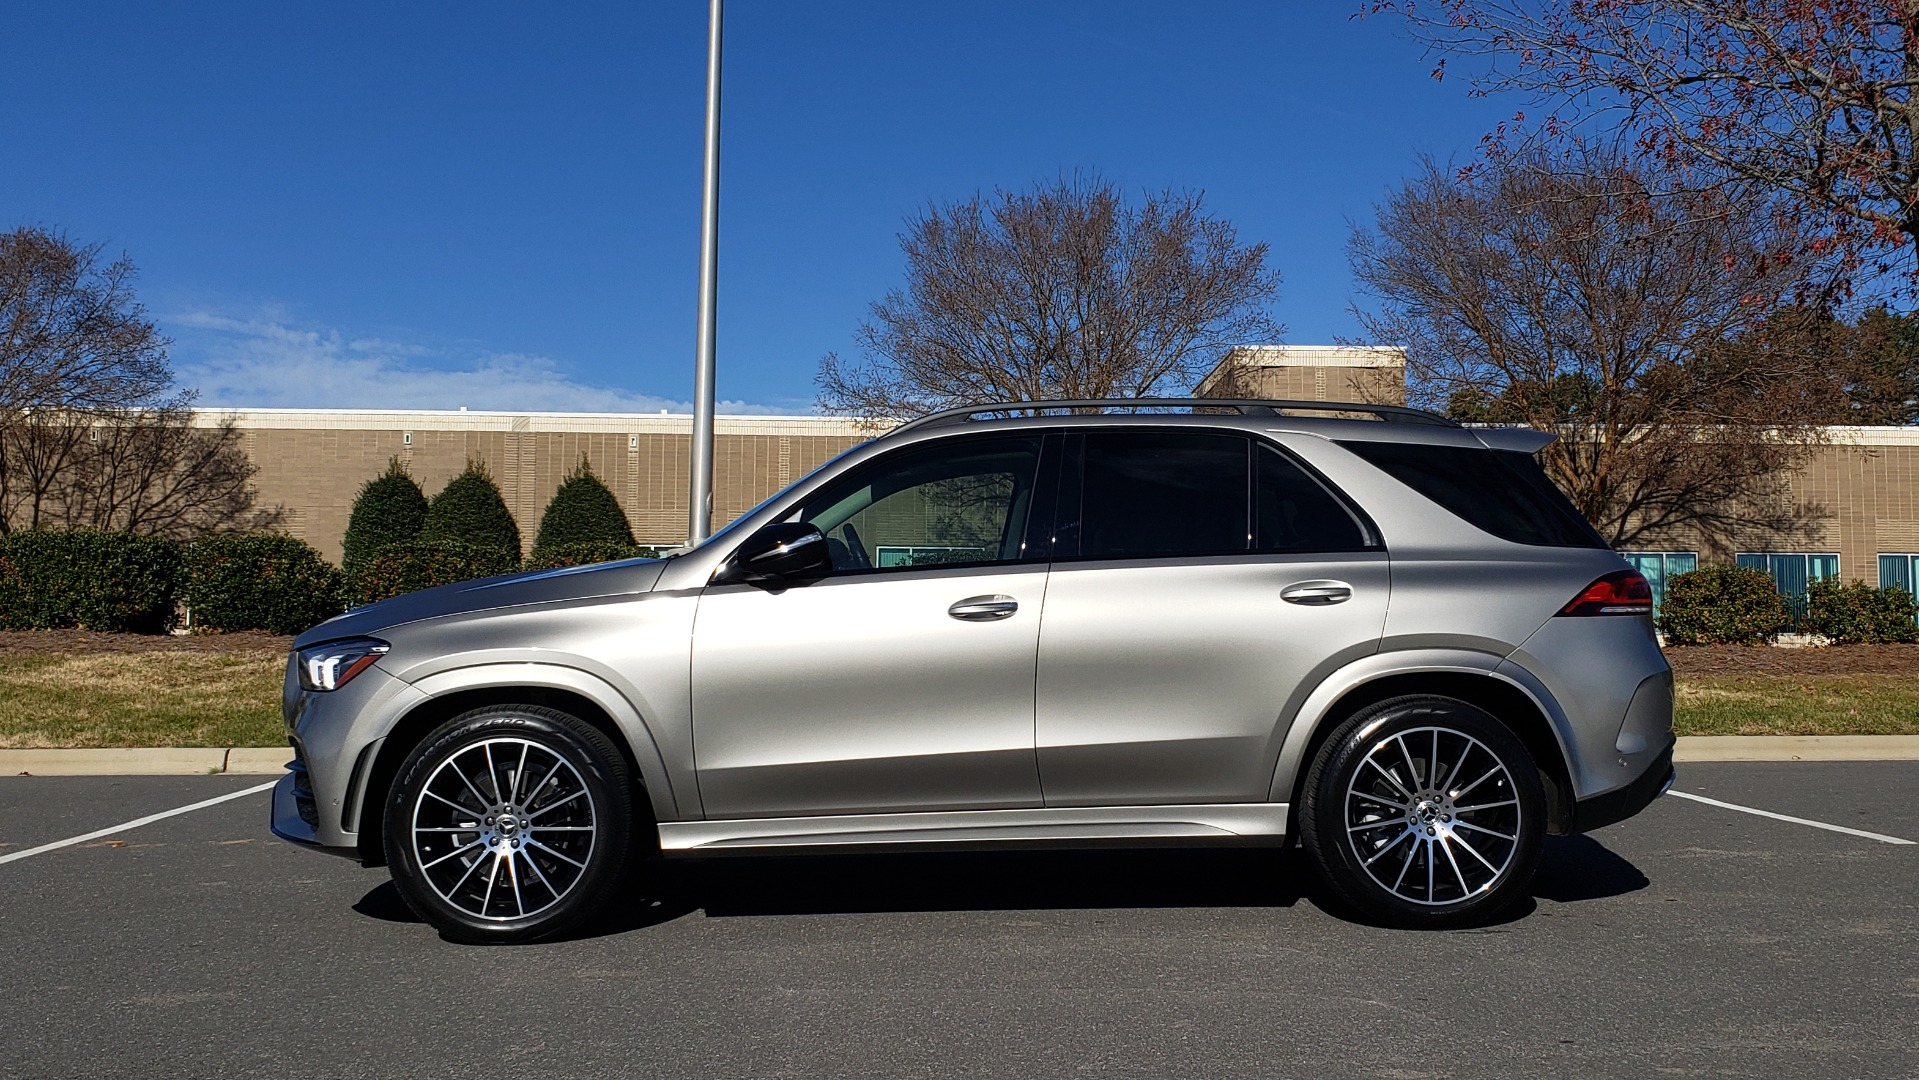 Used 2020 Mercedes-Benz GLE 350 PREMIUM / NAV / PARK ASST / NIGHT PKG / AMG LINE EXT / REARVIEW for sale Sold at Formula Imports in Charlotte NC 28227 4